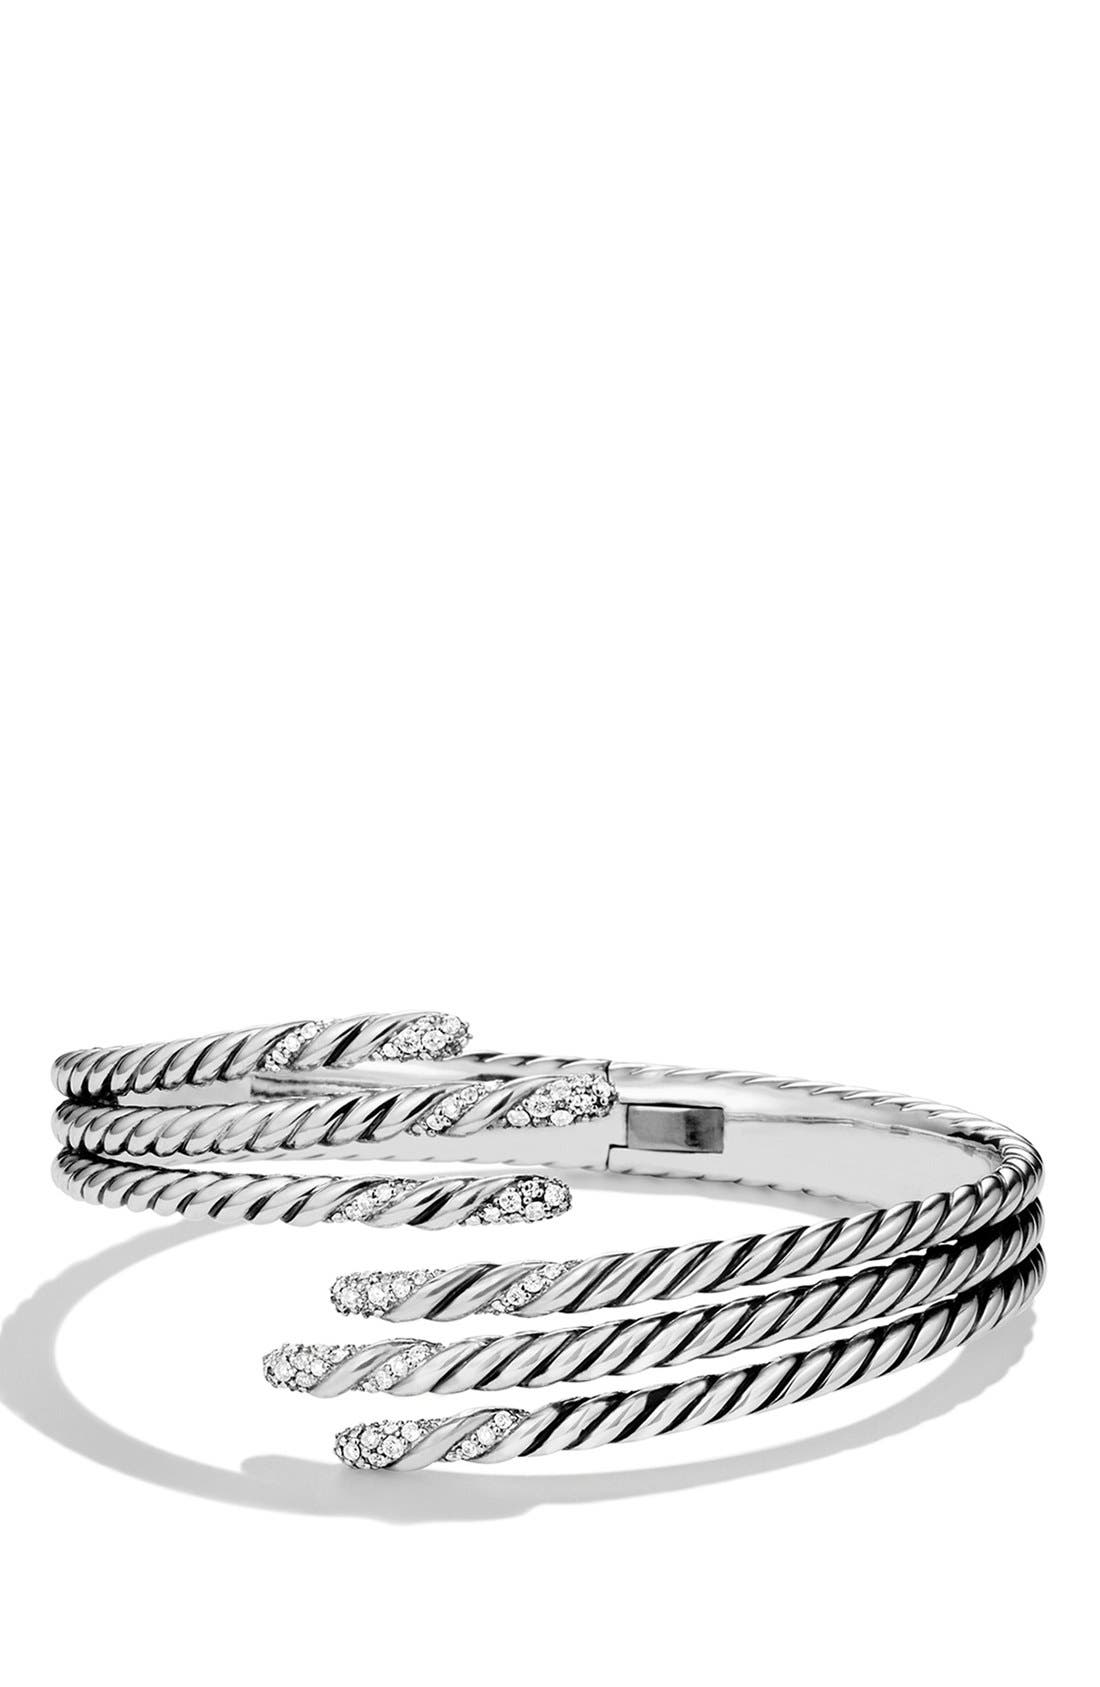 'Willow' Open Three-Row Bracelet with Diamonds,                         Main,                         color, 040